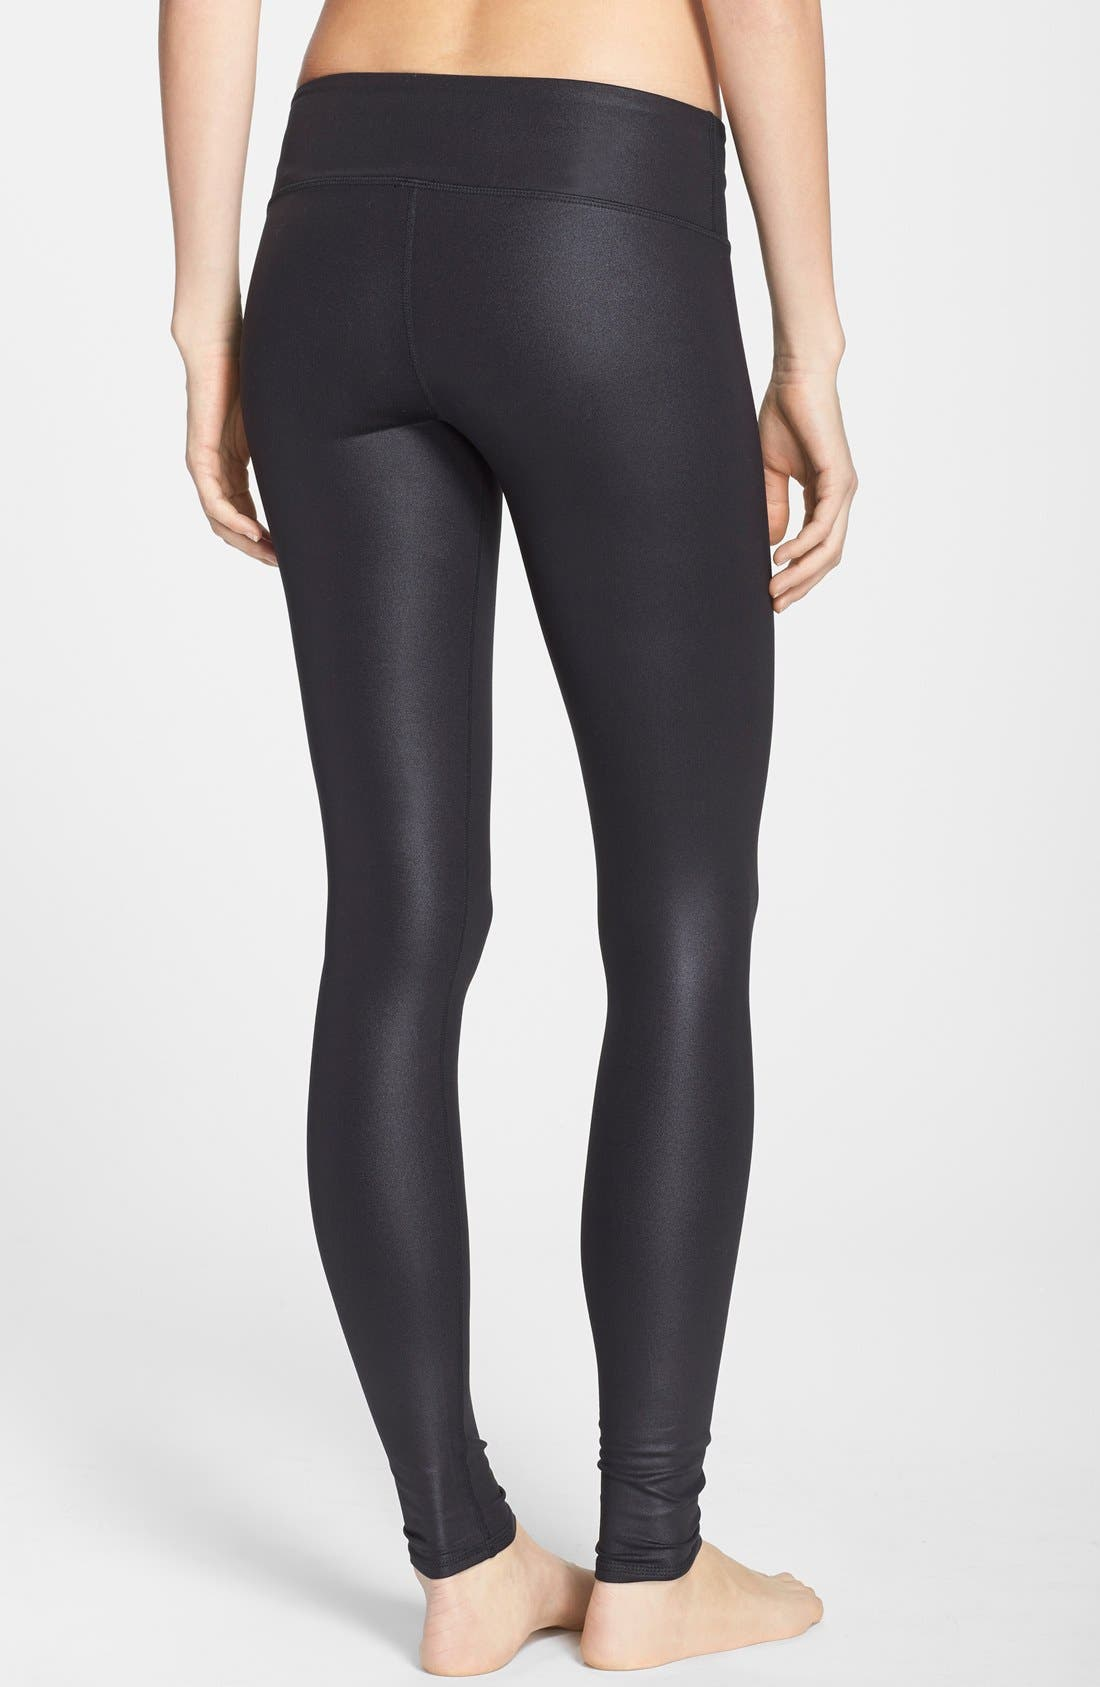 'Airbrushed' Leggings,                             Alternate thumbnail 3, color,                             001